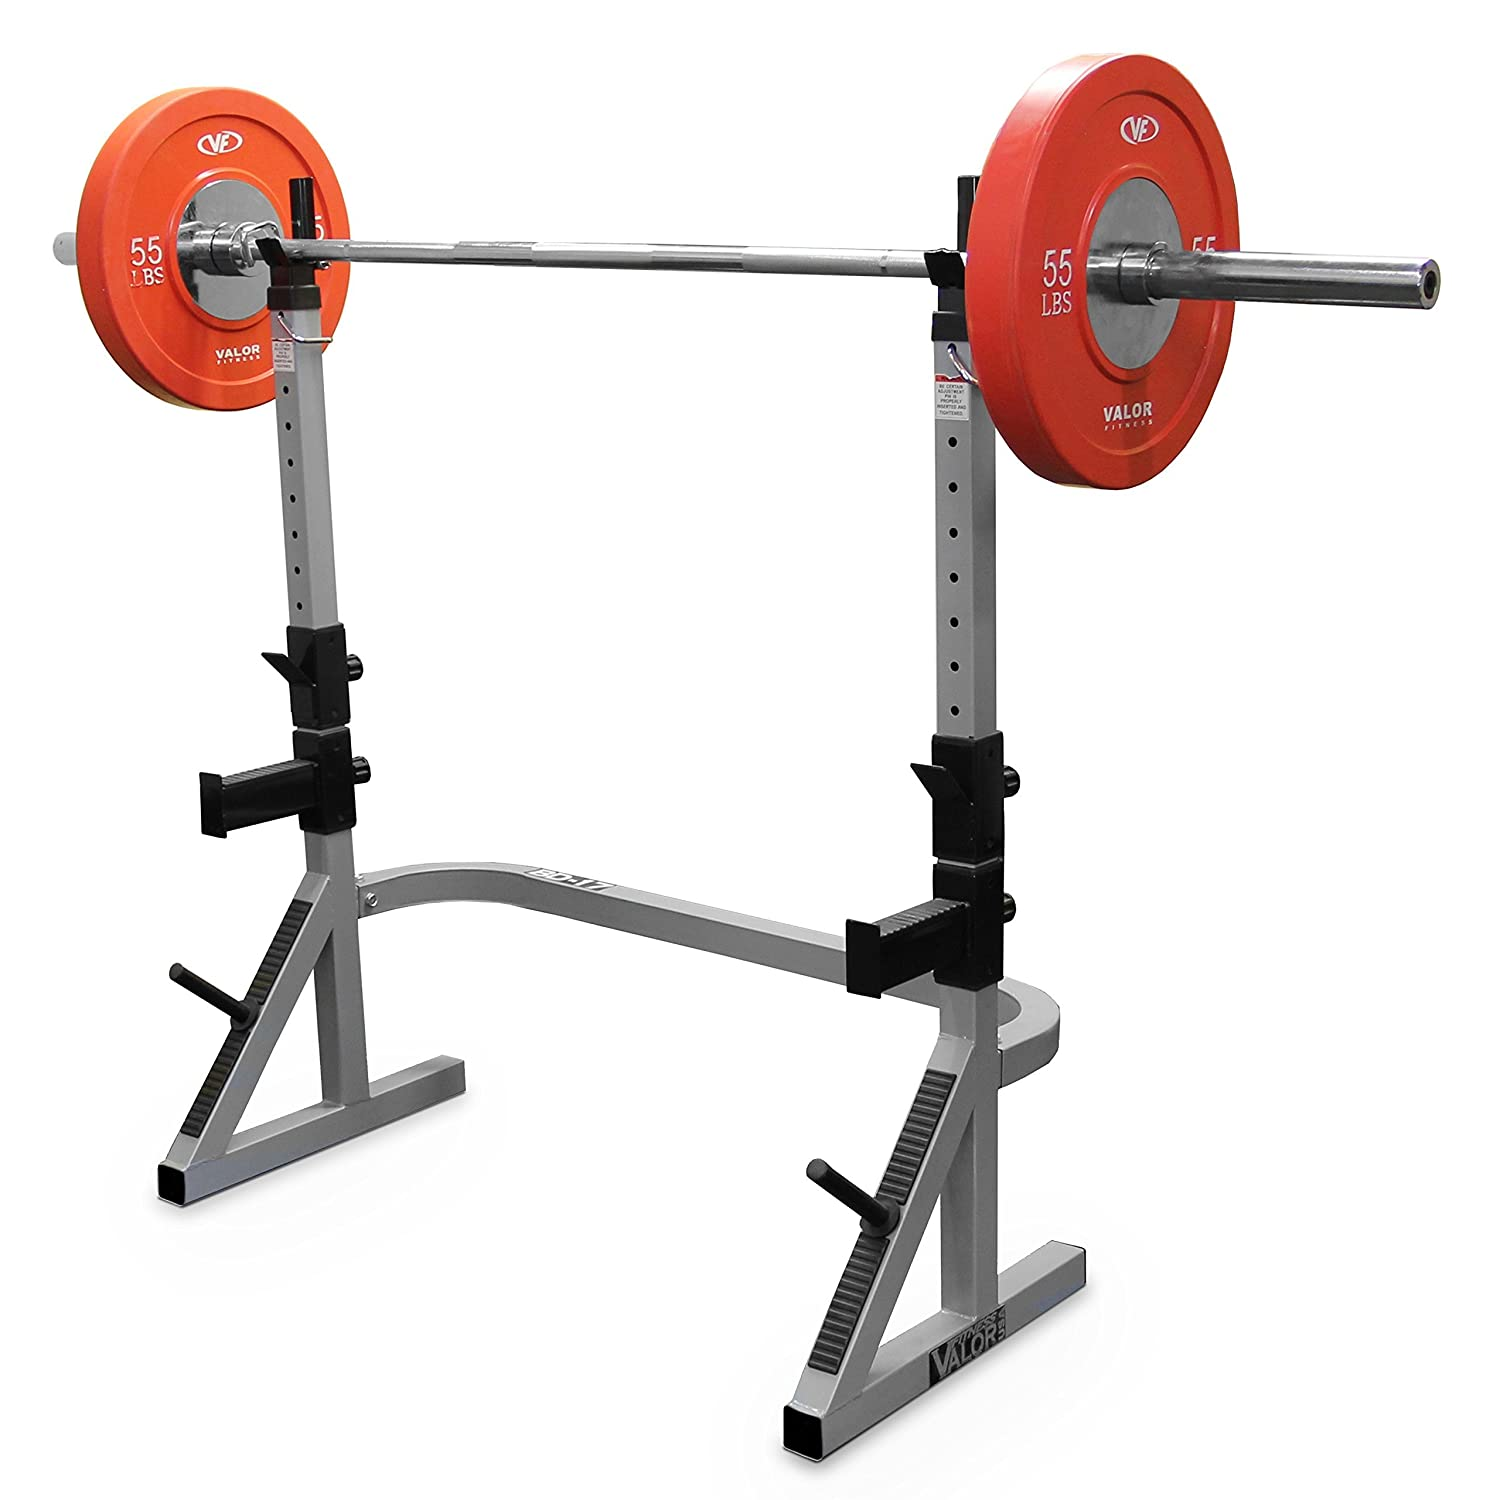 bench dp dip rack with amazon bar hardcastle weight spotters bars uk outdoors bodybuilding adjustable squat co sports